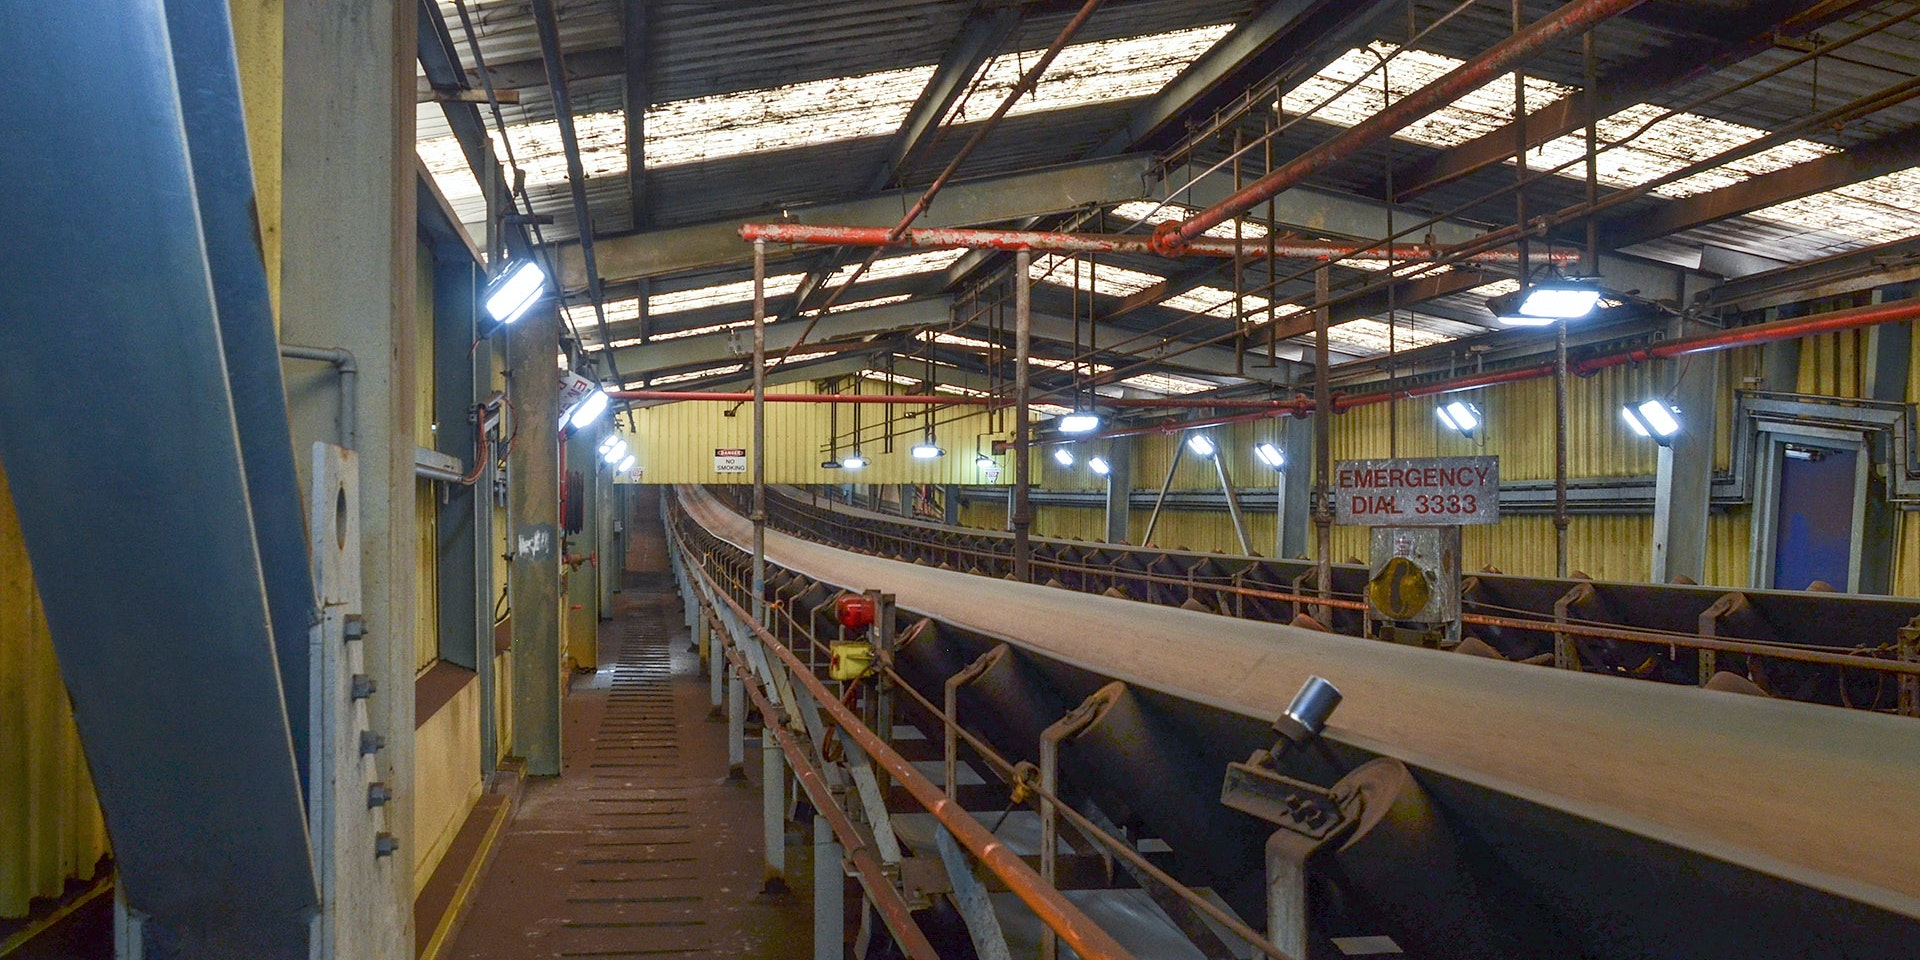 Tunnel Ray LED Tunnel / Low Profile Light in application, installed on an enclosed rising conveyor on a  coal fired power station